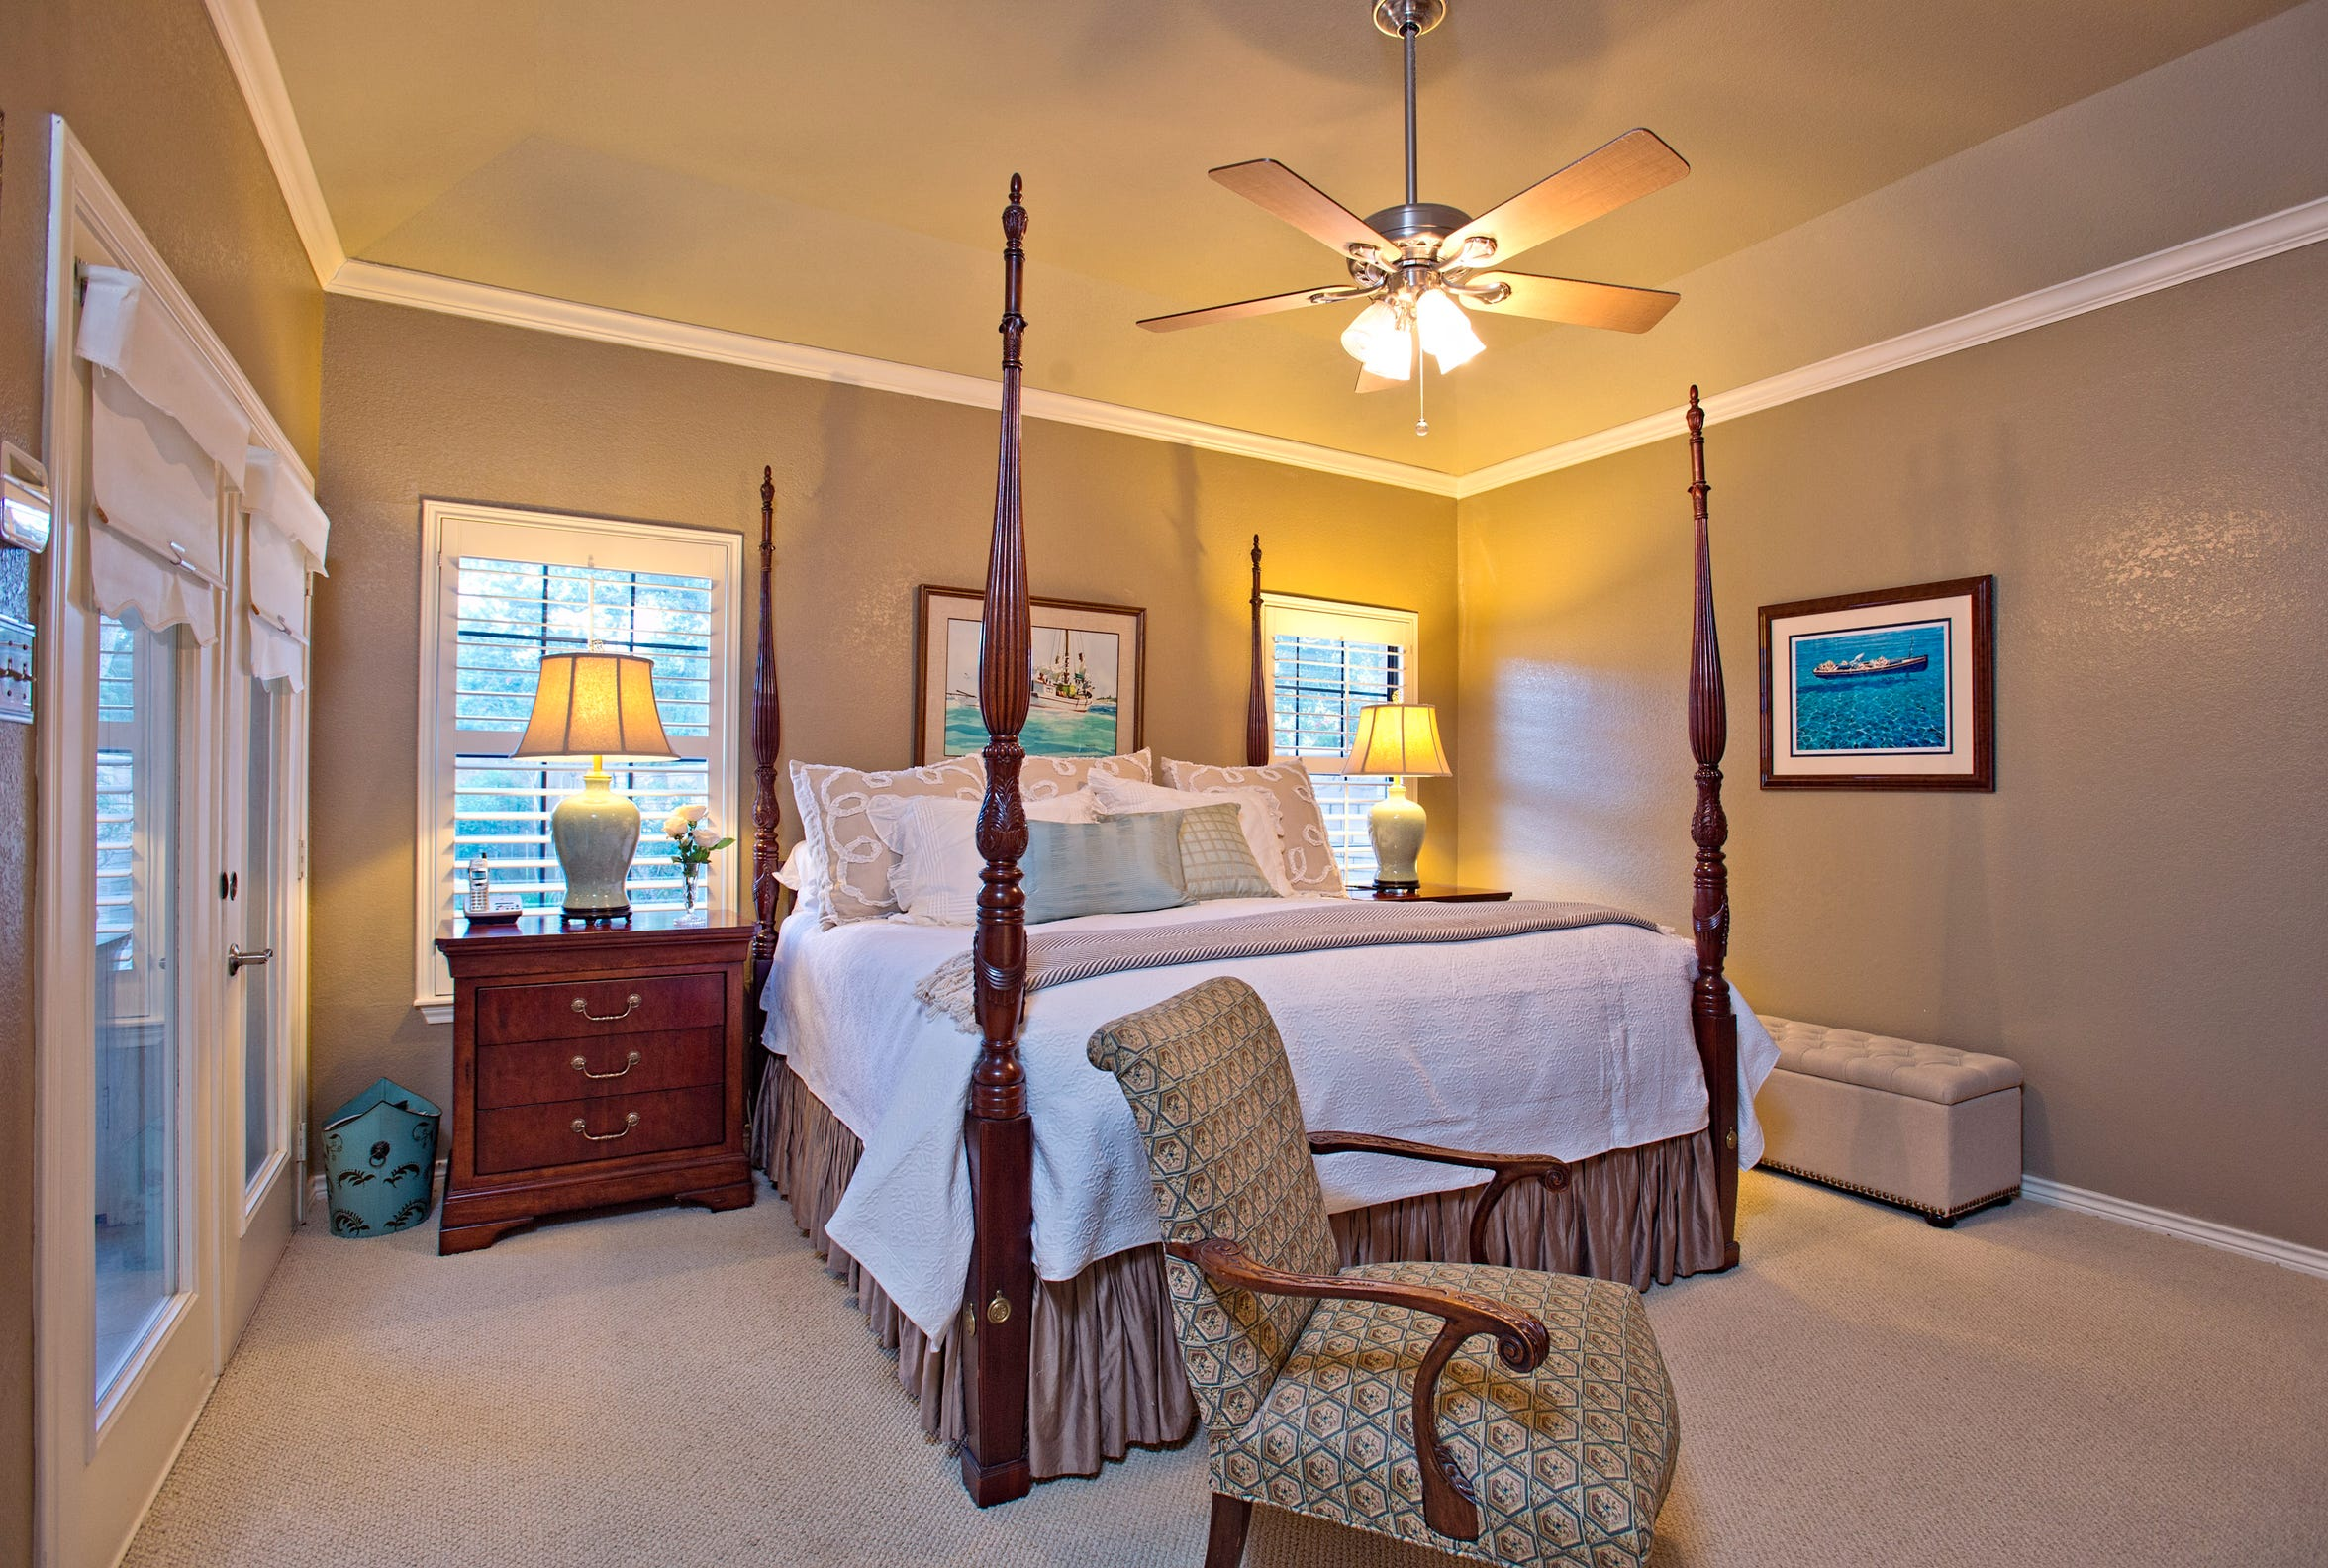 The master bedroom opens to the sun room and features plantation shuttered windows bringing in wonderful natural light in to the room